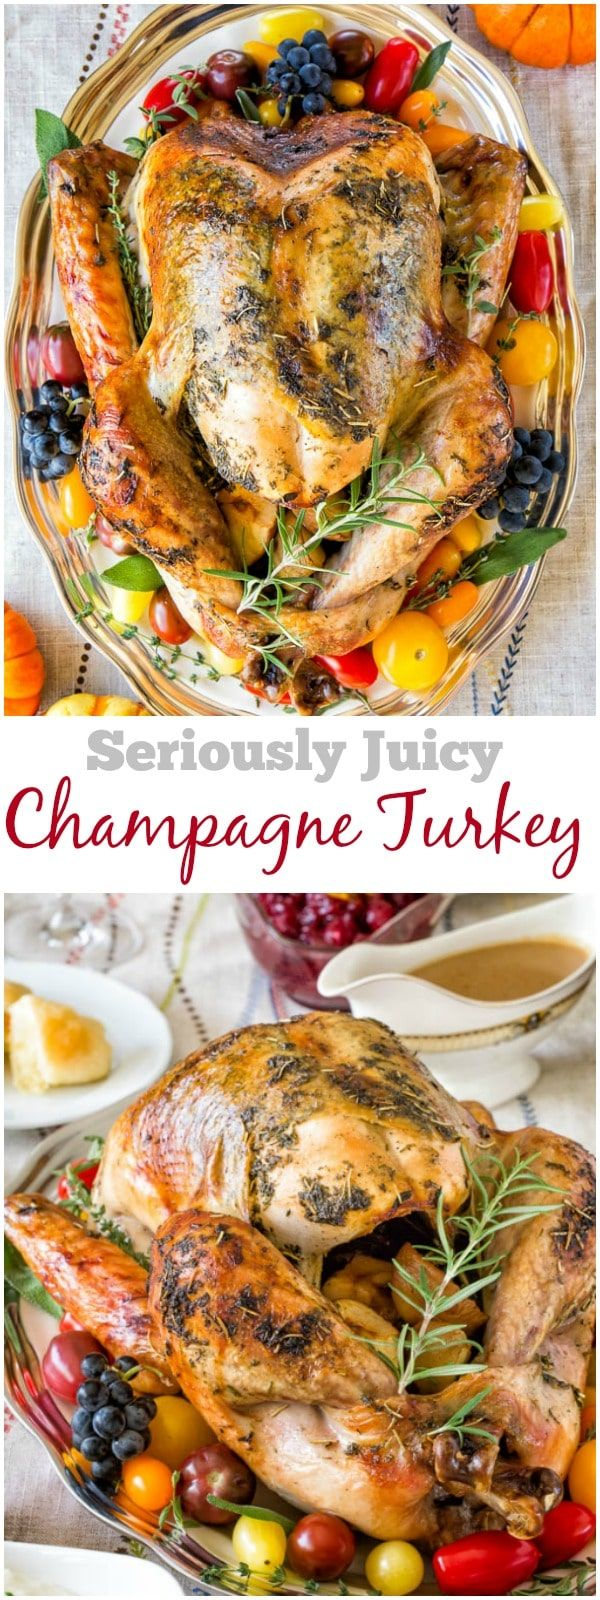 Seriously Juicy Champagne Turkey